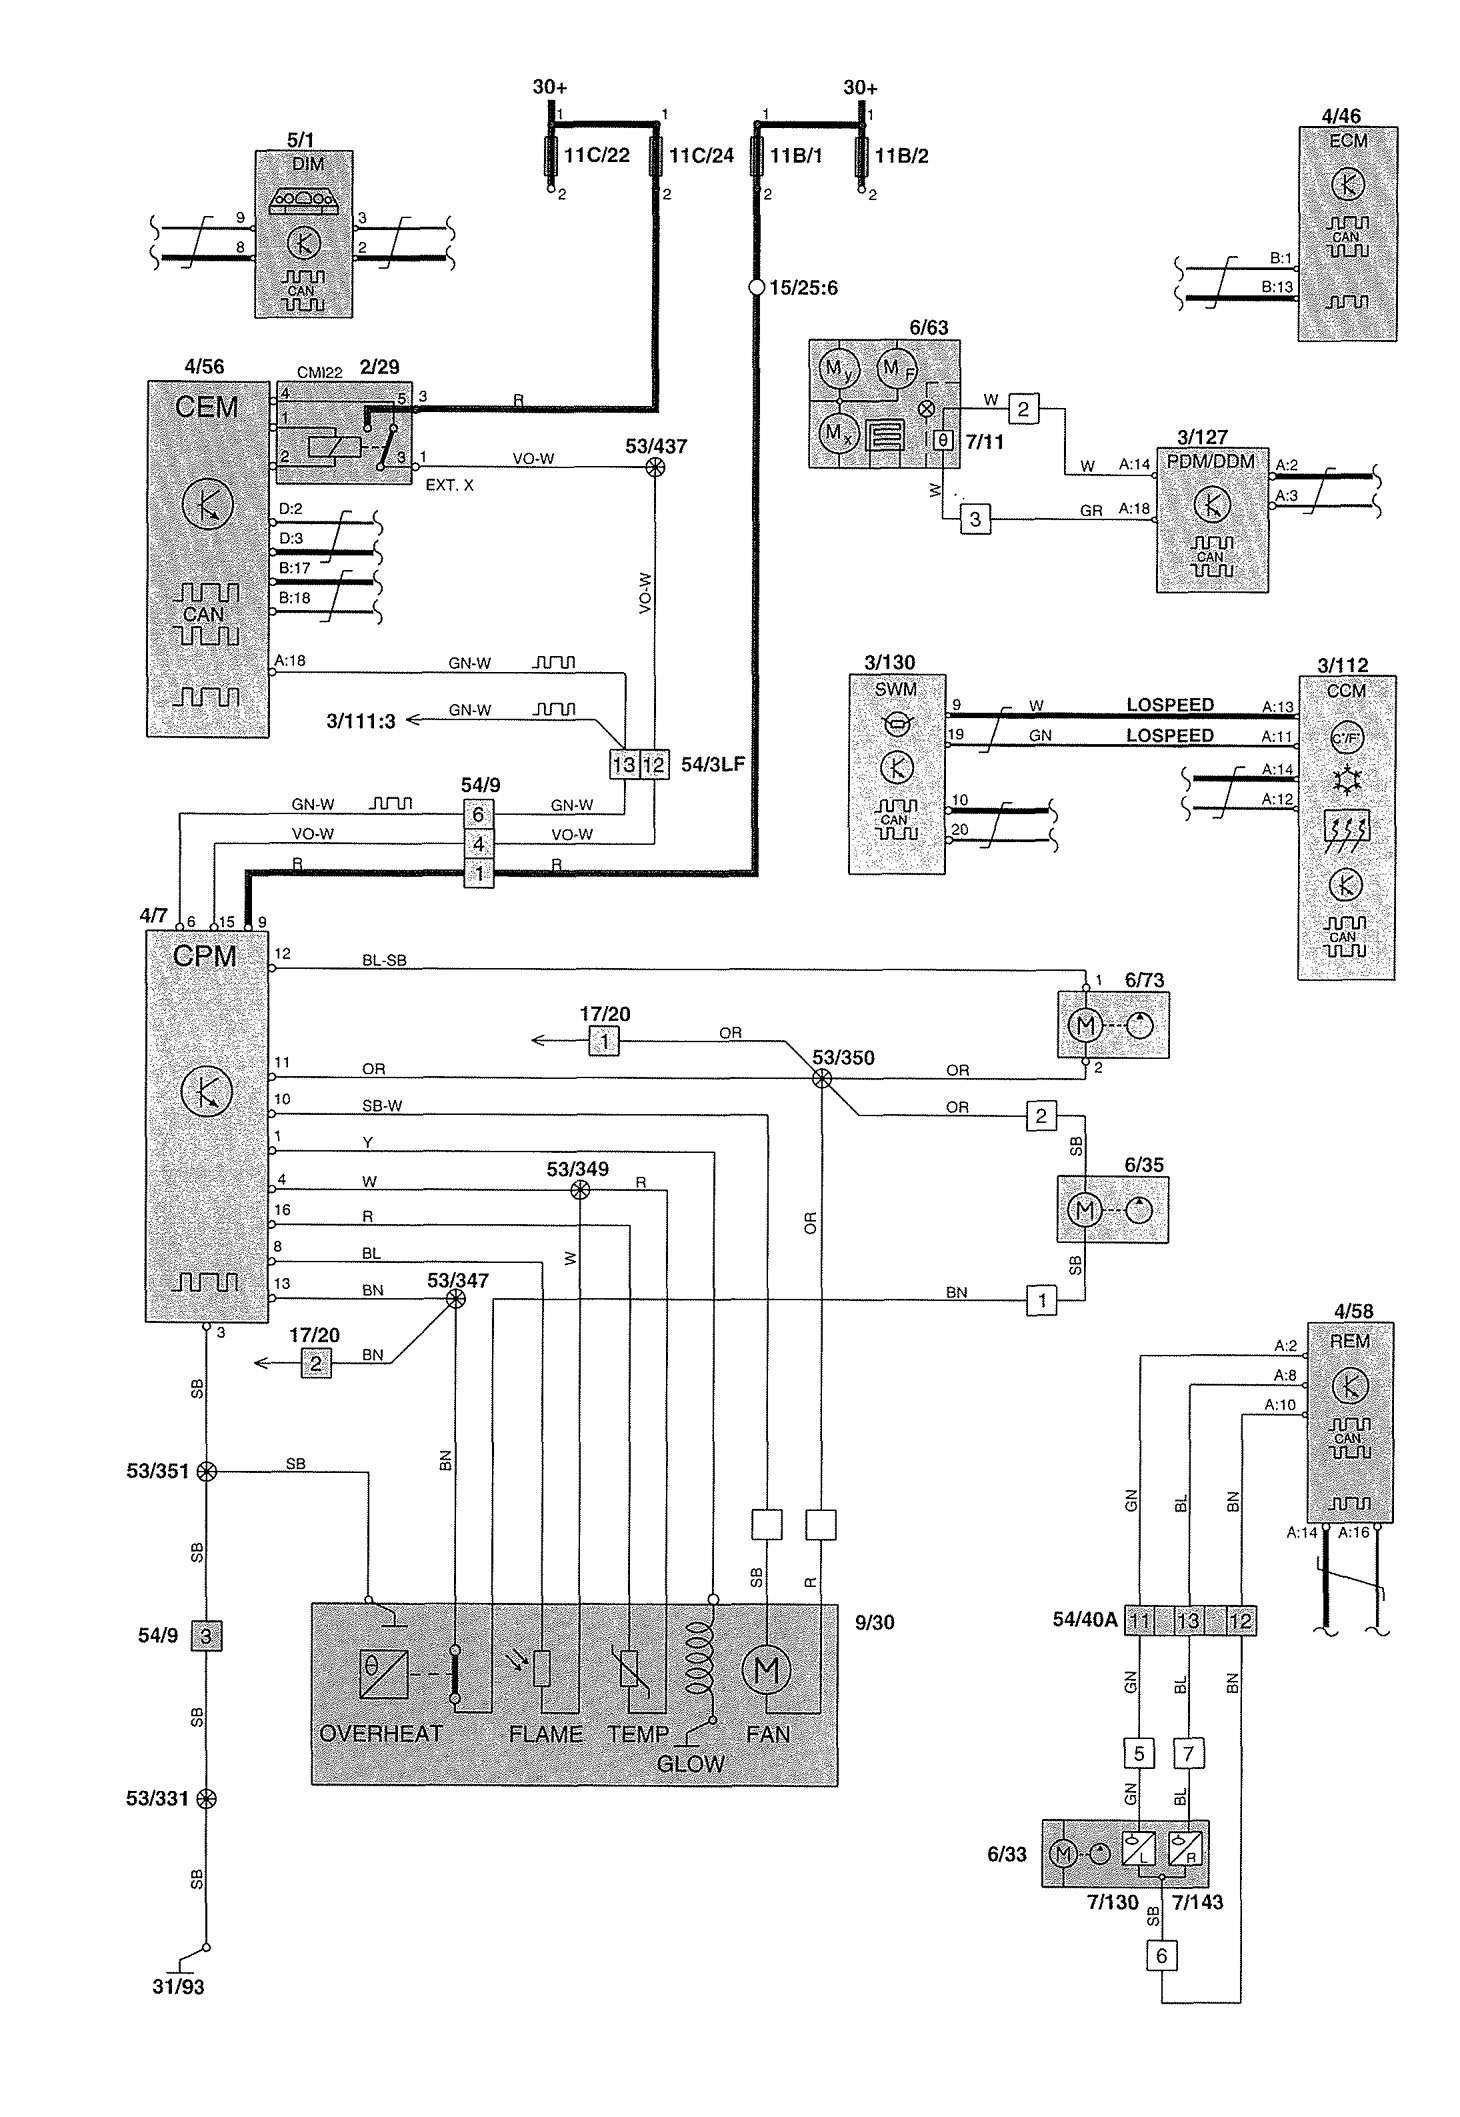 wiring diagram volvo v70 2004